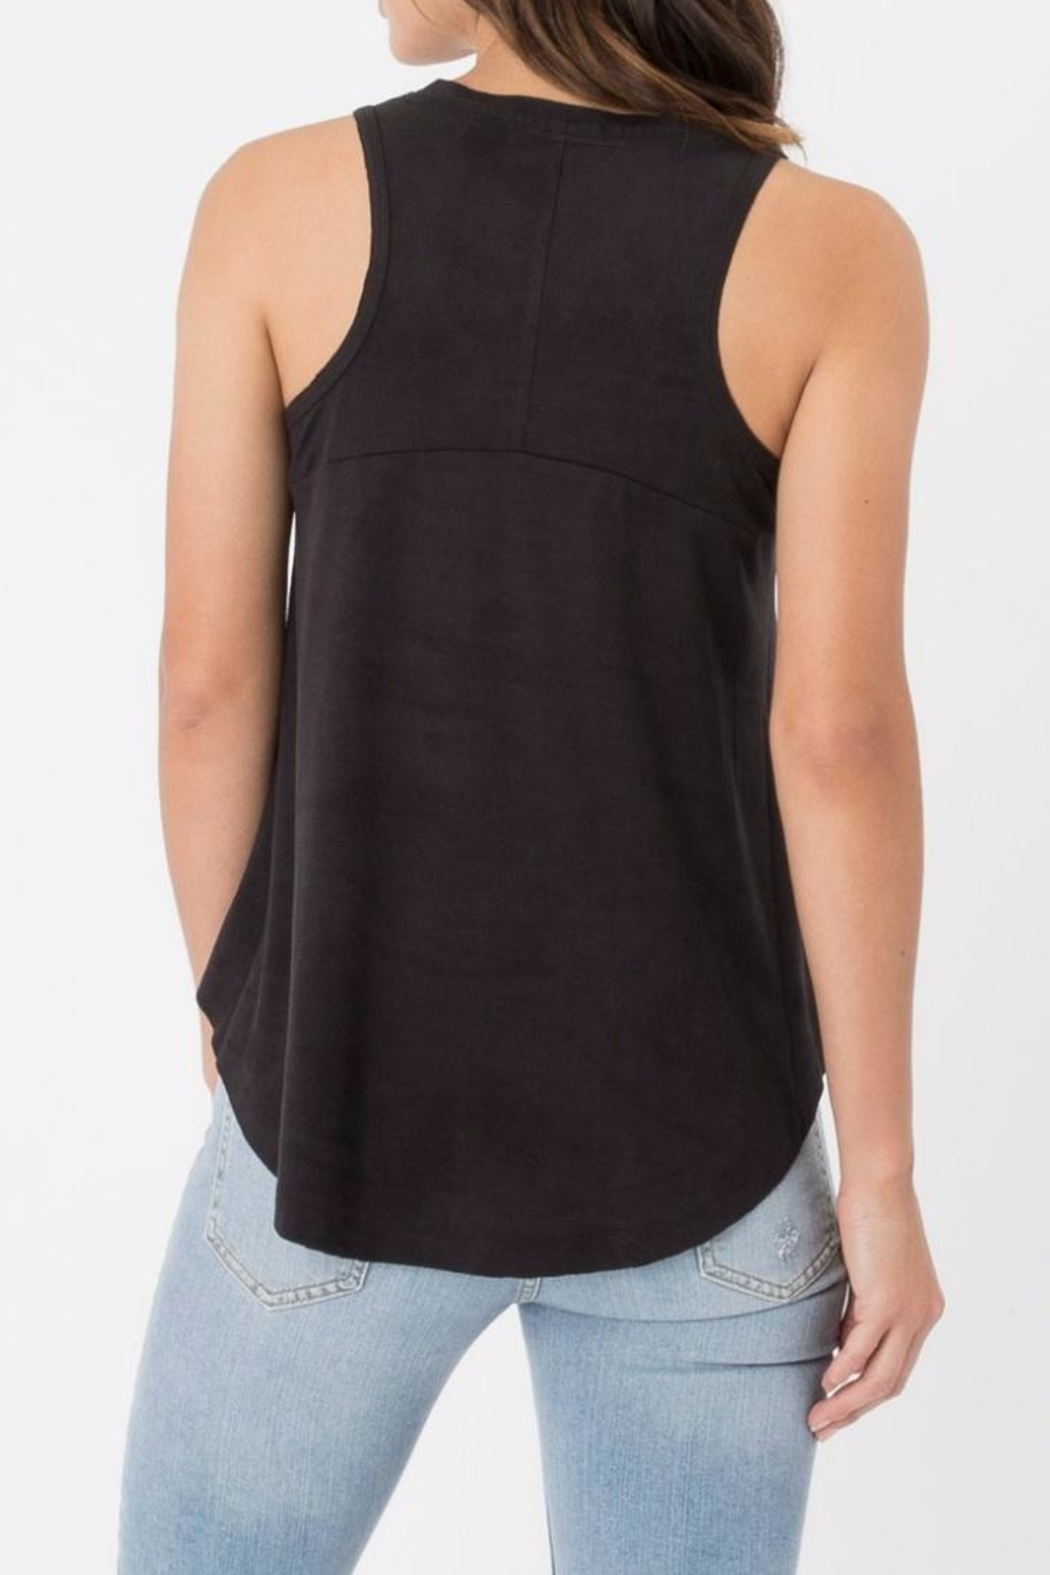 z supply Black Suede Tank - Front Full Image